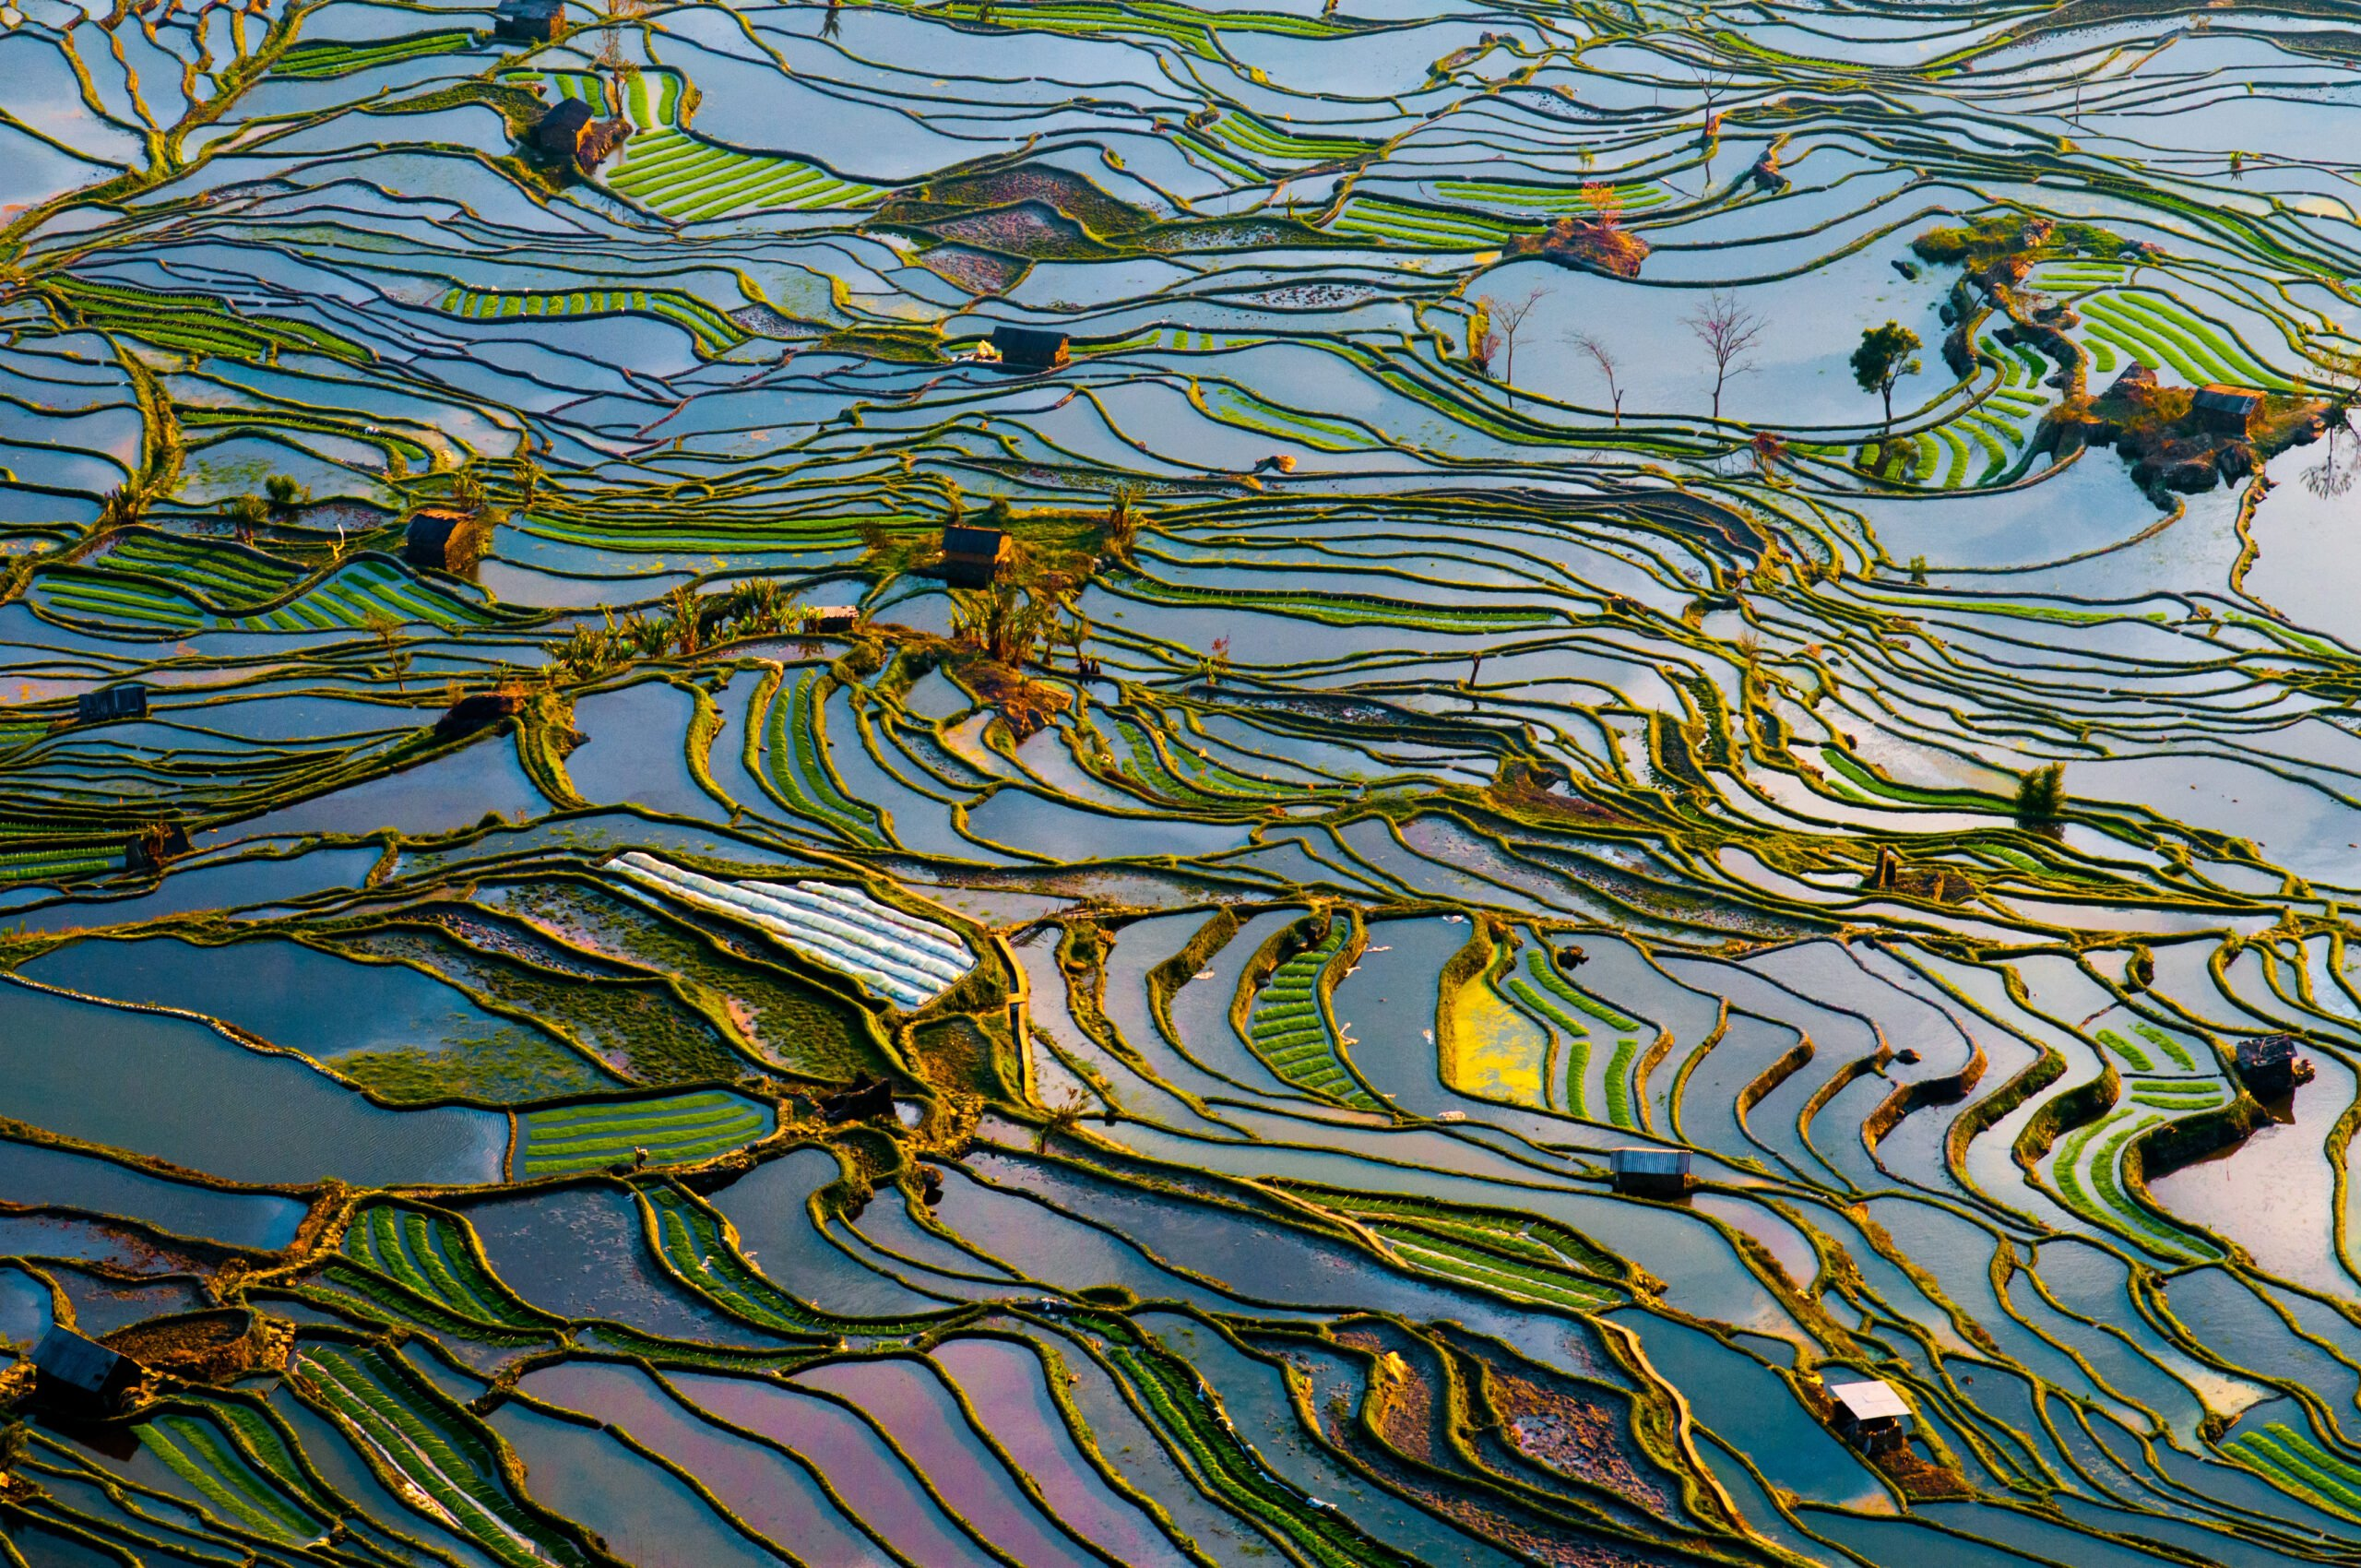 Learn About Yuanyang Hani Rice Terraces In Our Jianshui And Yuanyang Hani Rice Terraces 3 Day Package